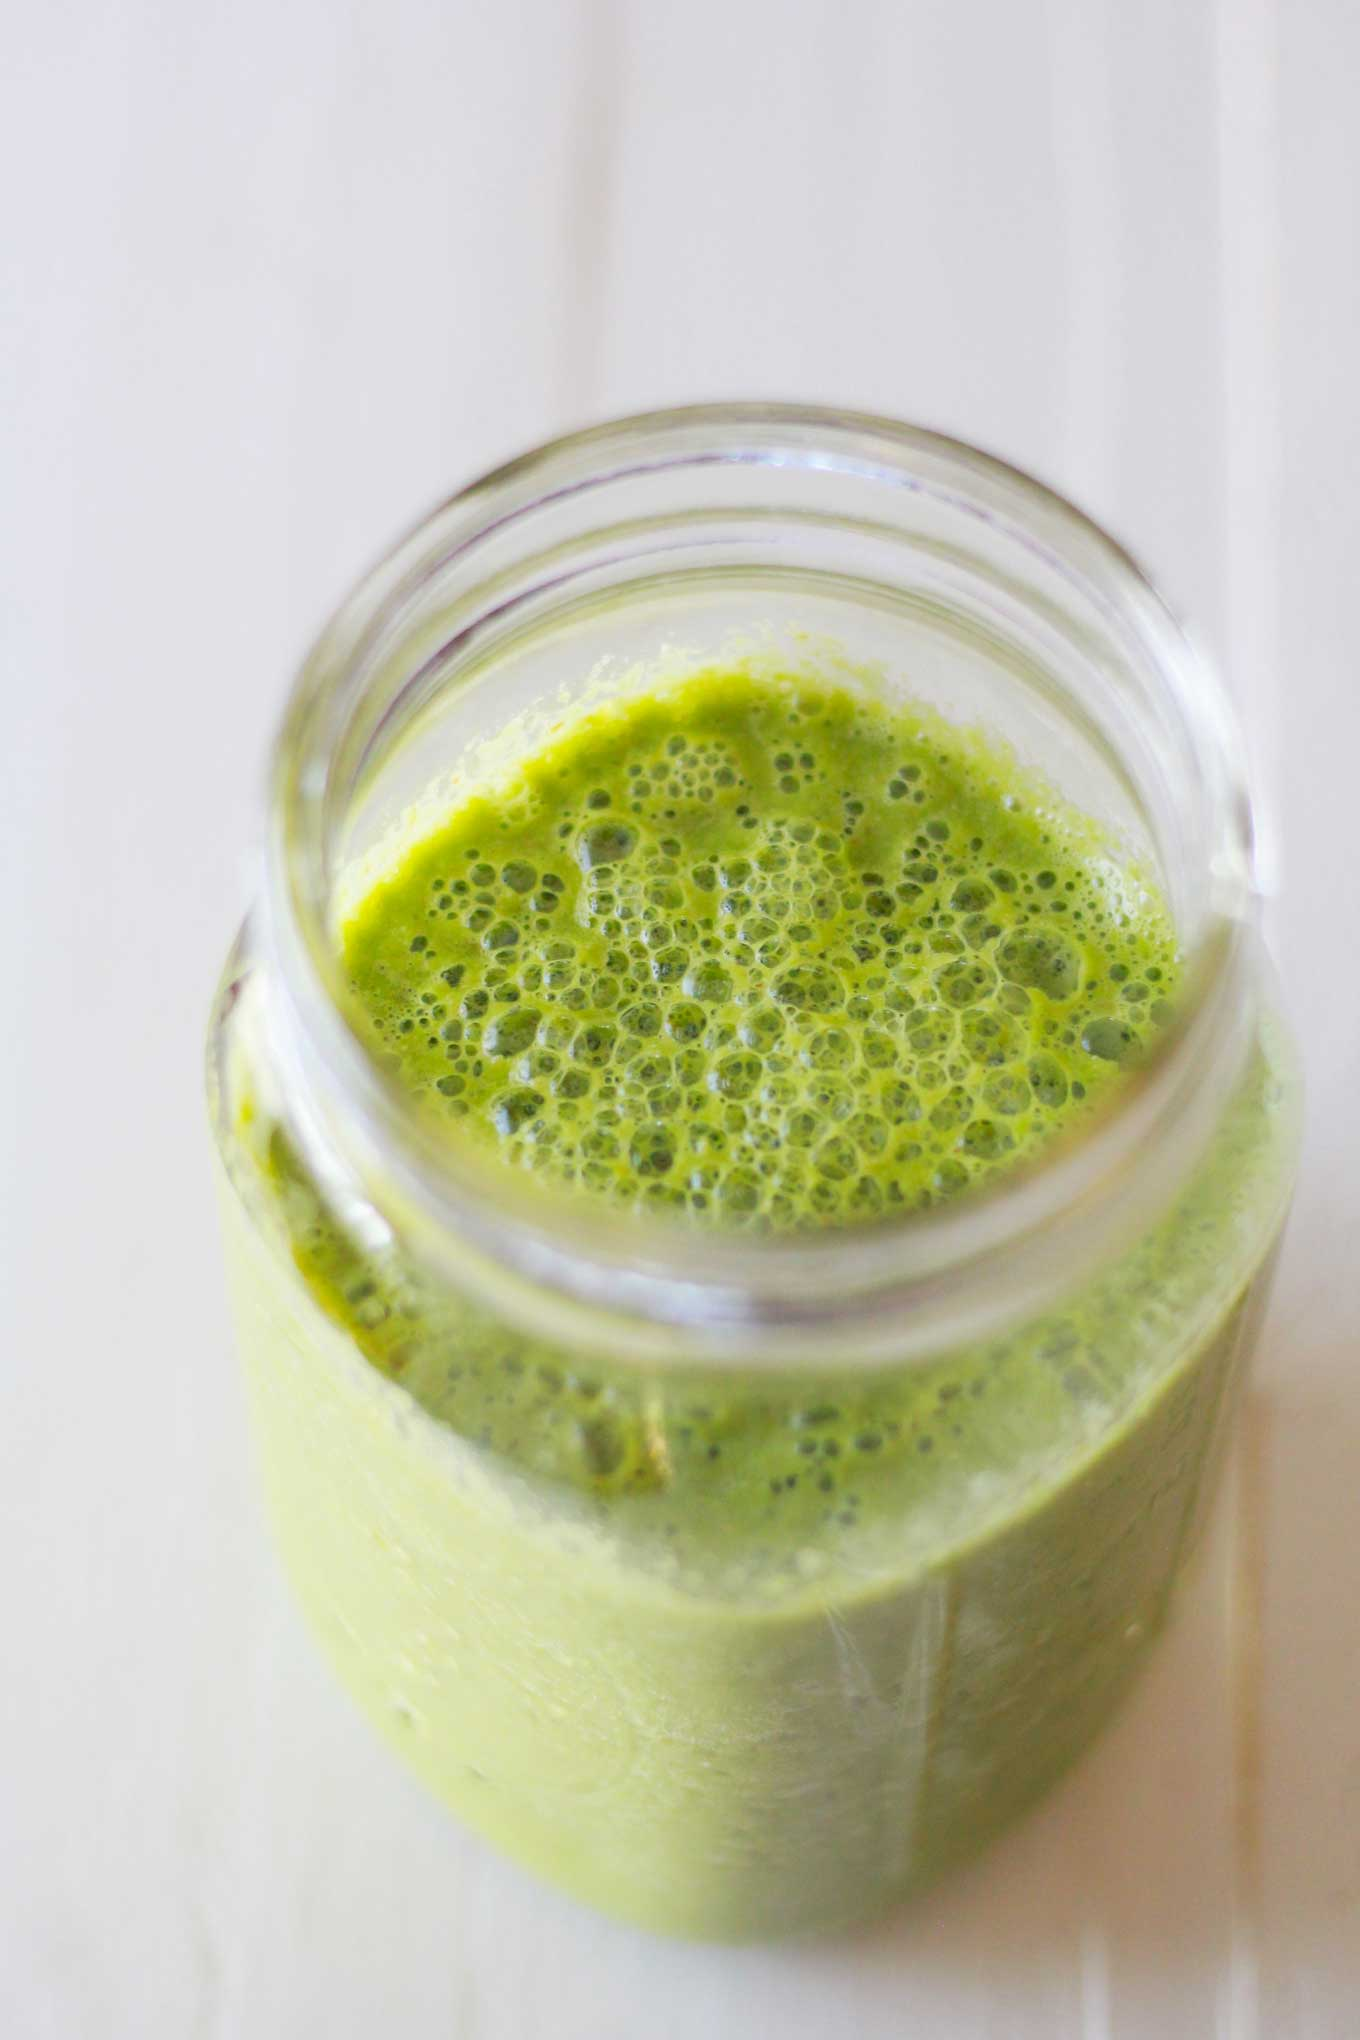 Perfect Green Smoothie | Green smoothie in mason jar | Vegan green smoothie recipe | https://eatwithinyourmeans.com/